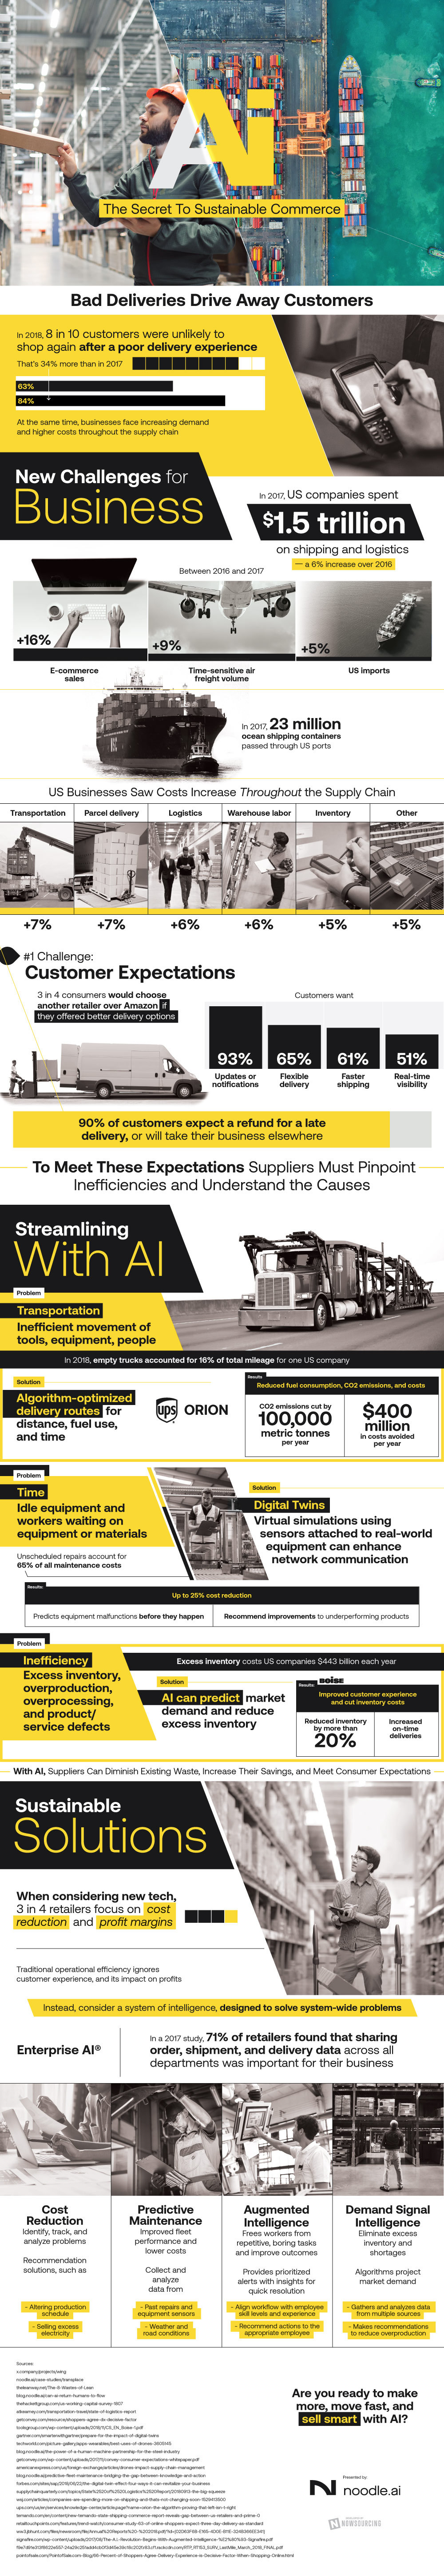 Can AI Streamline The Supply Chain? - Infographic